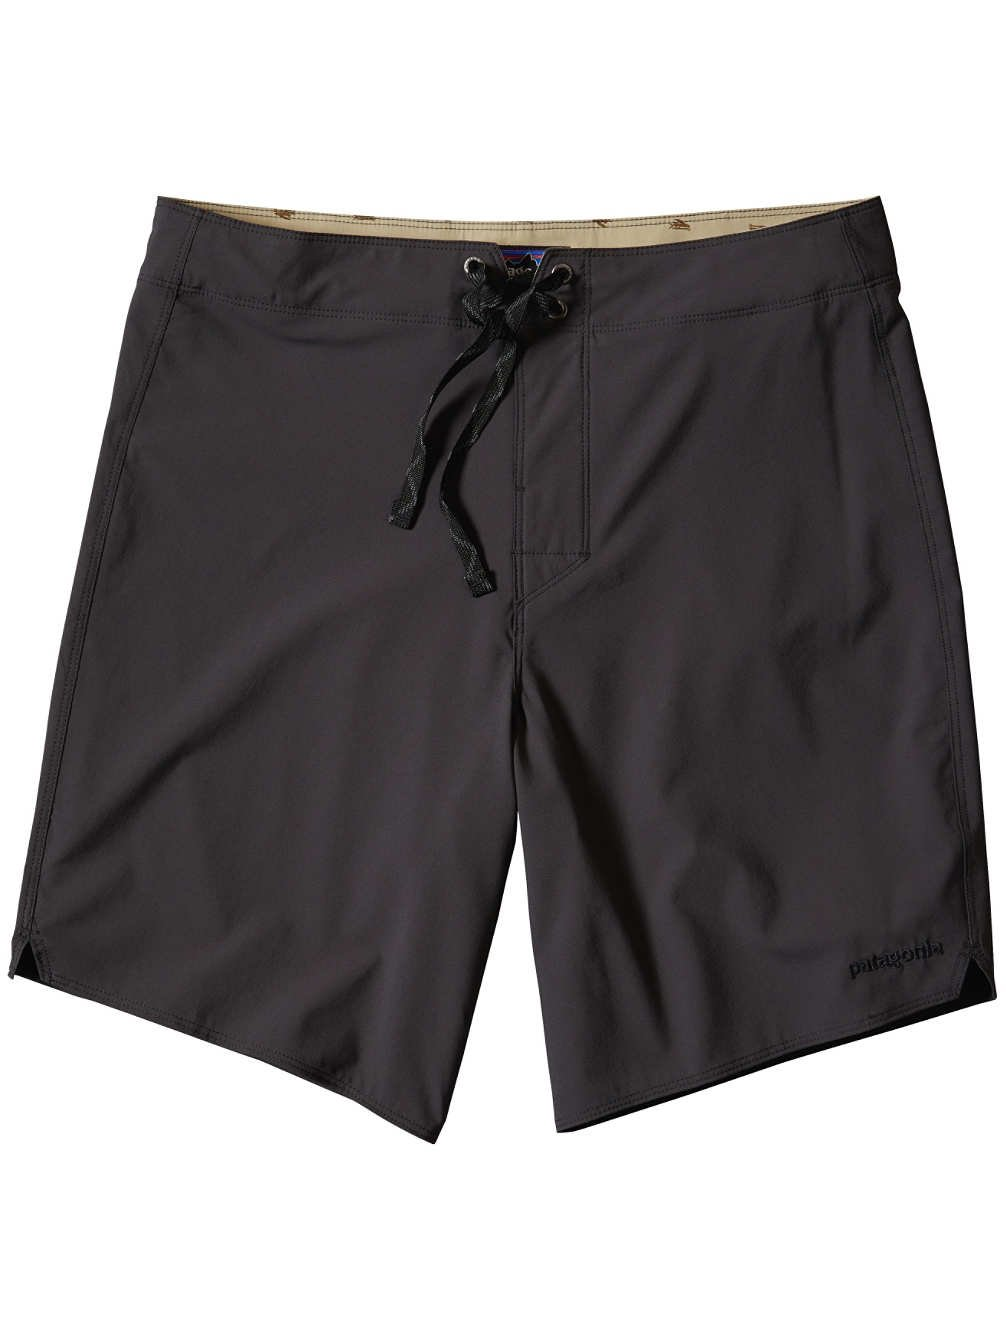 Patagonia M's Light and Variable Boardshorts 18 In Pantaló n Corto, Hombre 86690